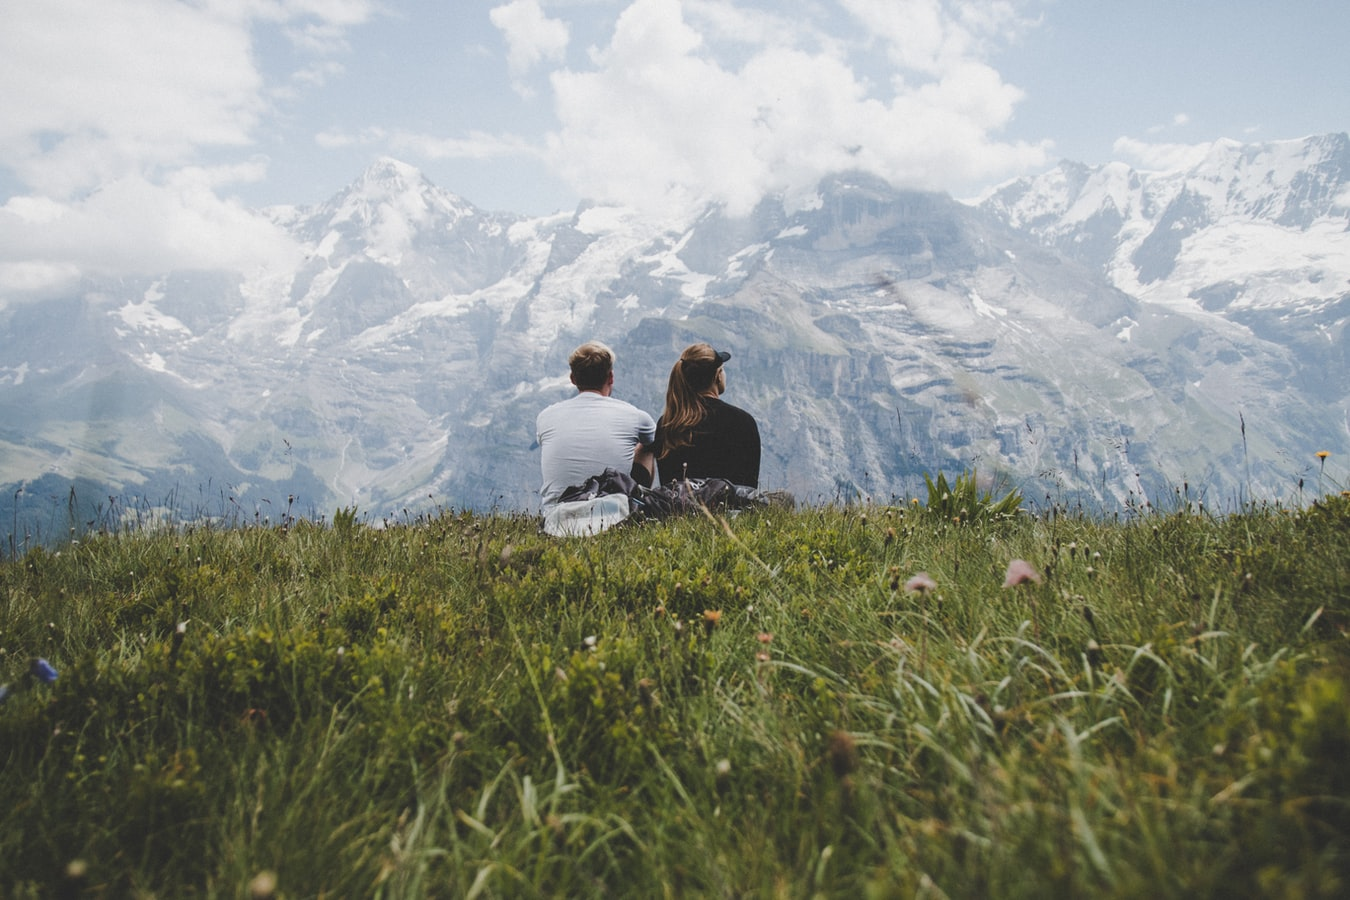 Couple sitting near a snow capped mountain range, discussing their marital problems